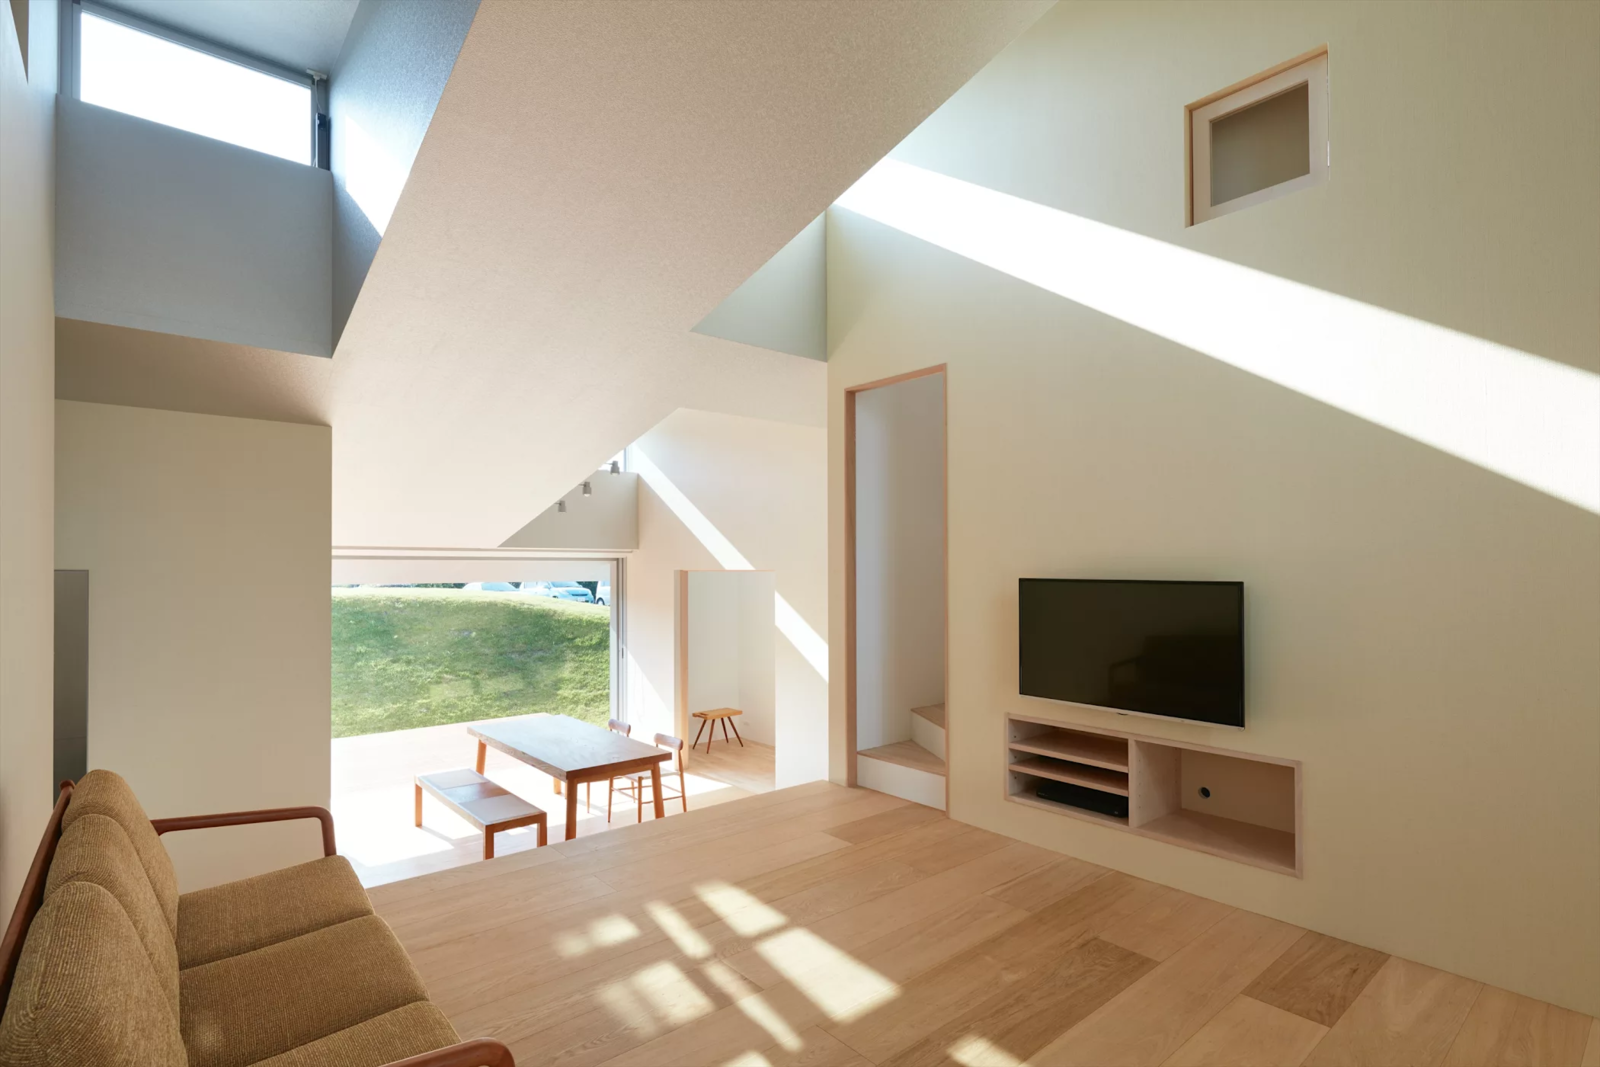 Photo 5 of 6 in House in Tokushima by Fujiwara-Muro Architects